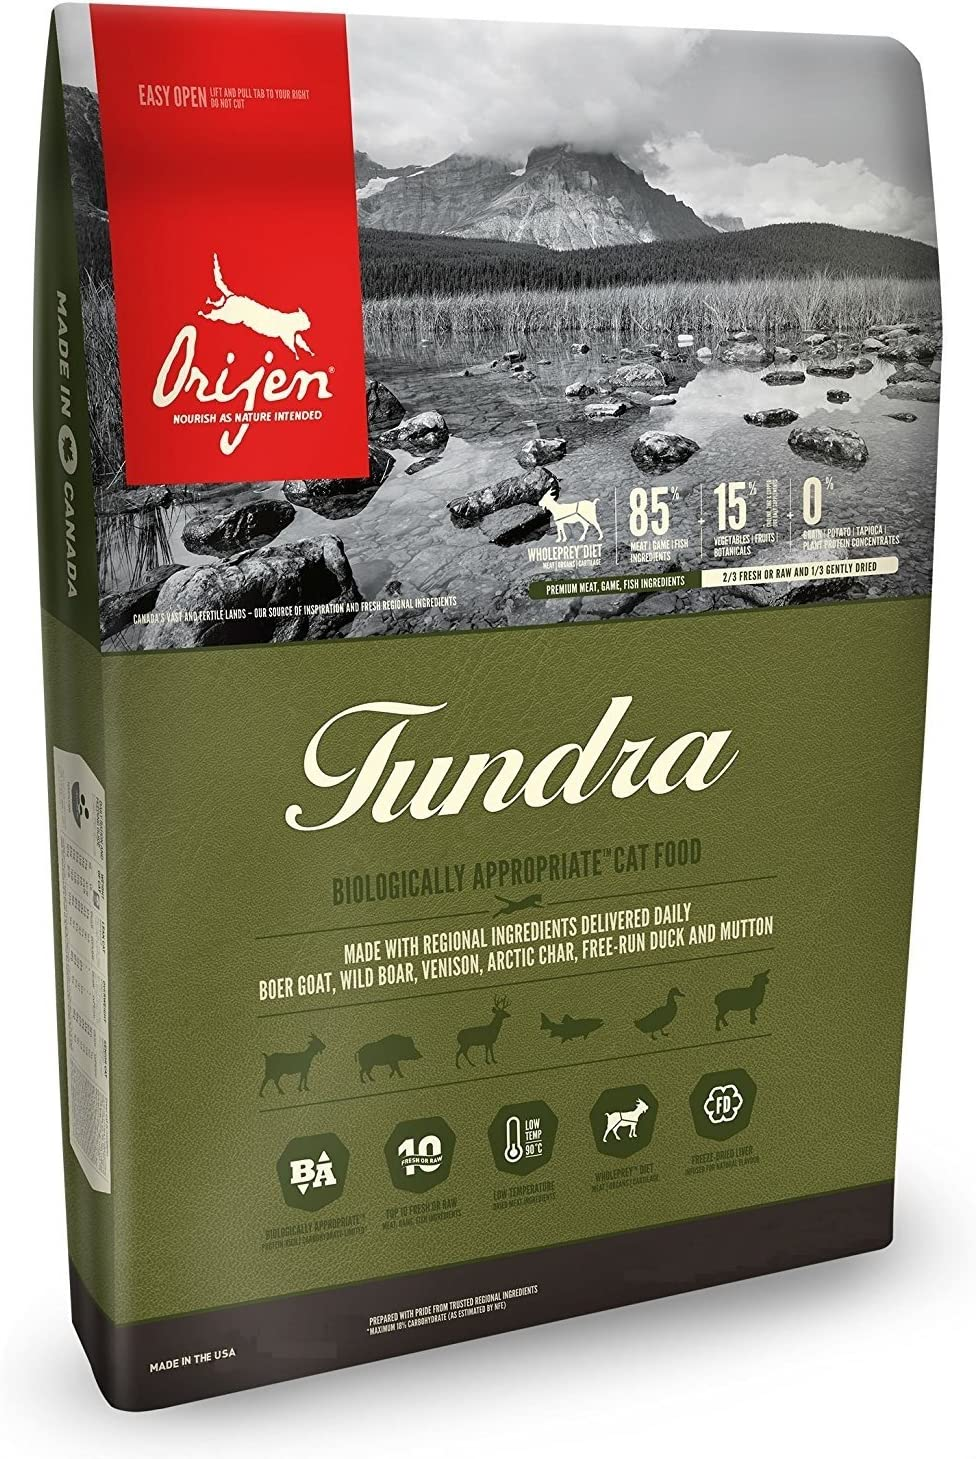 Orijen Biologically Appropriate Cat Food, Tundra, 12 Ounce